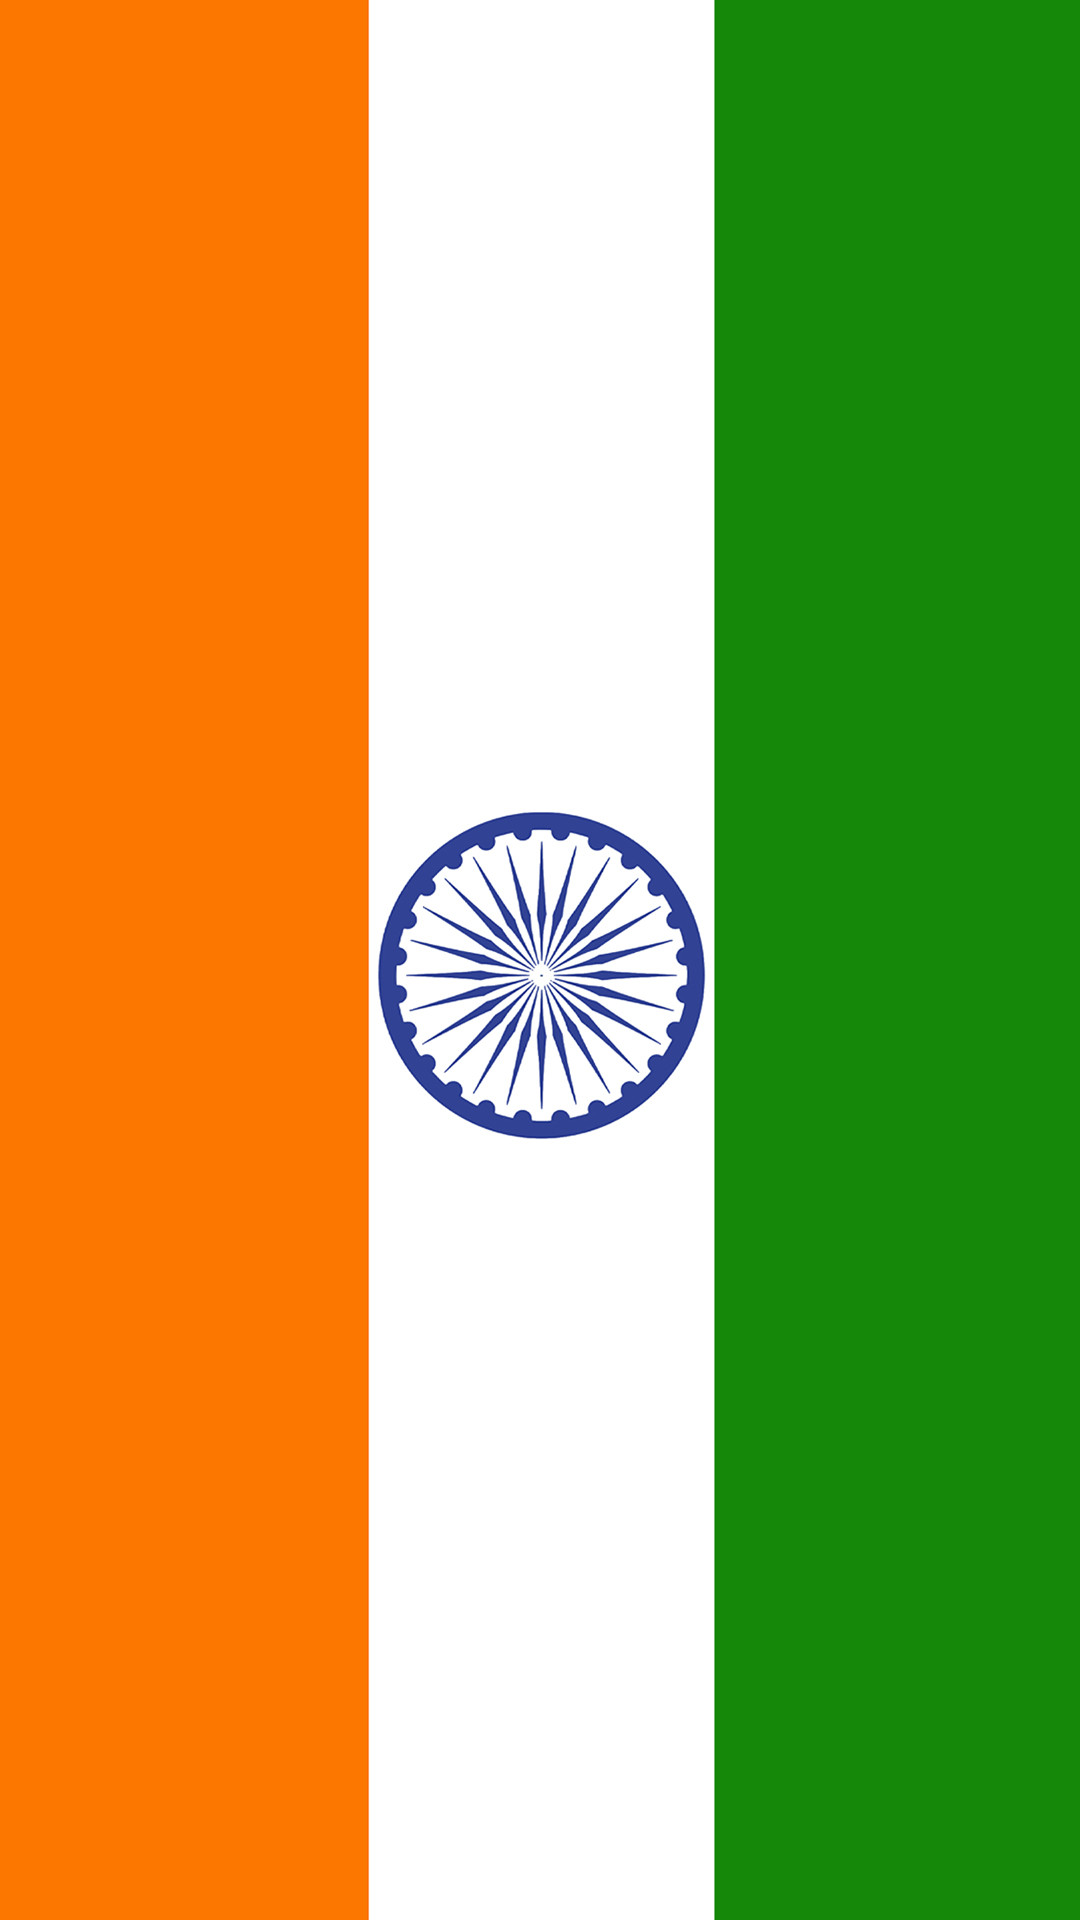 indian flag mobile wallpapers 2018 (77+ background pictures)